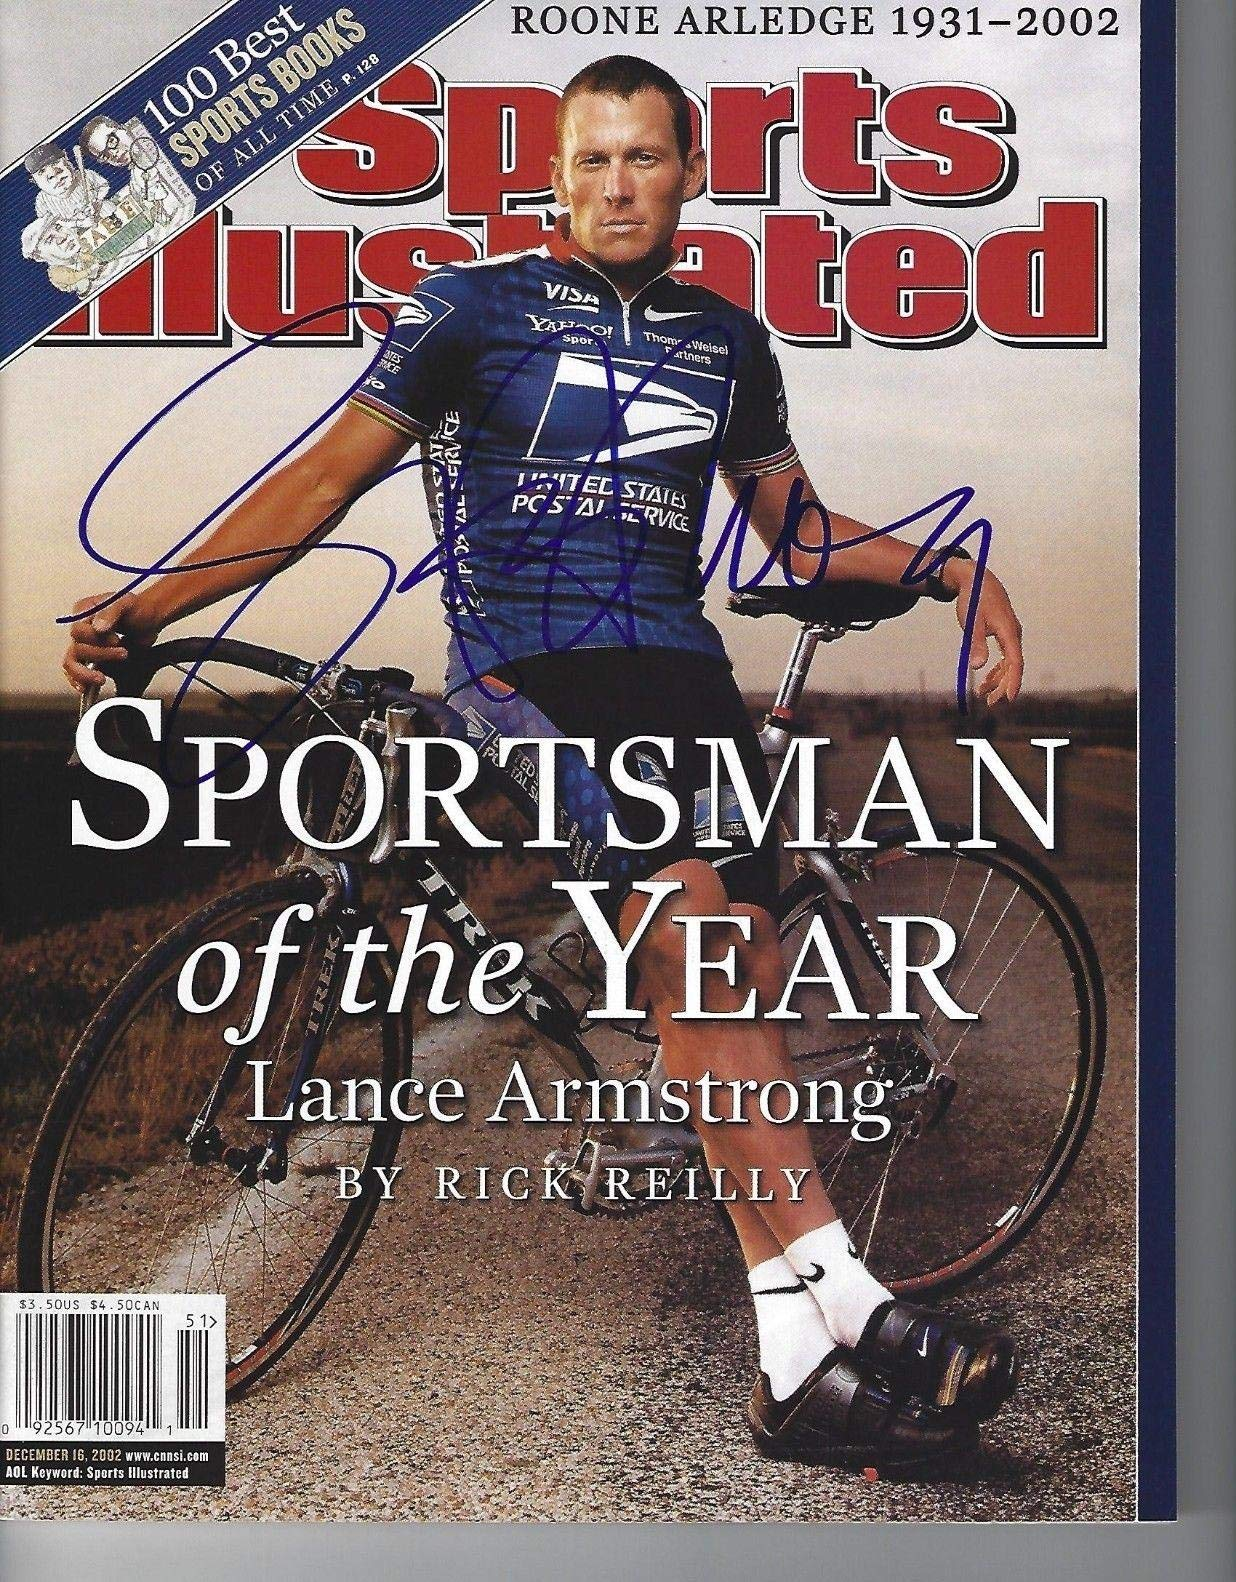 LANCE ARMSTRONG Signed 12/16/02 SPORTS ILLUSTRATED with Schwartz COA (NO LABEL) Autographed Sports Magazines